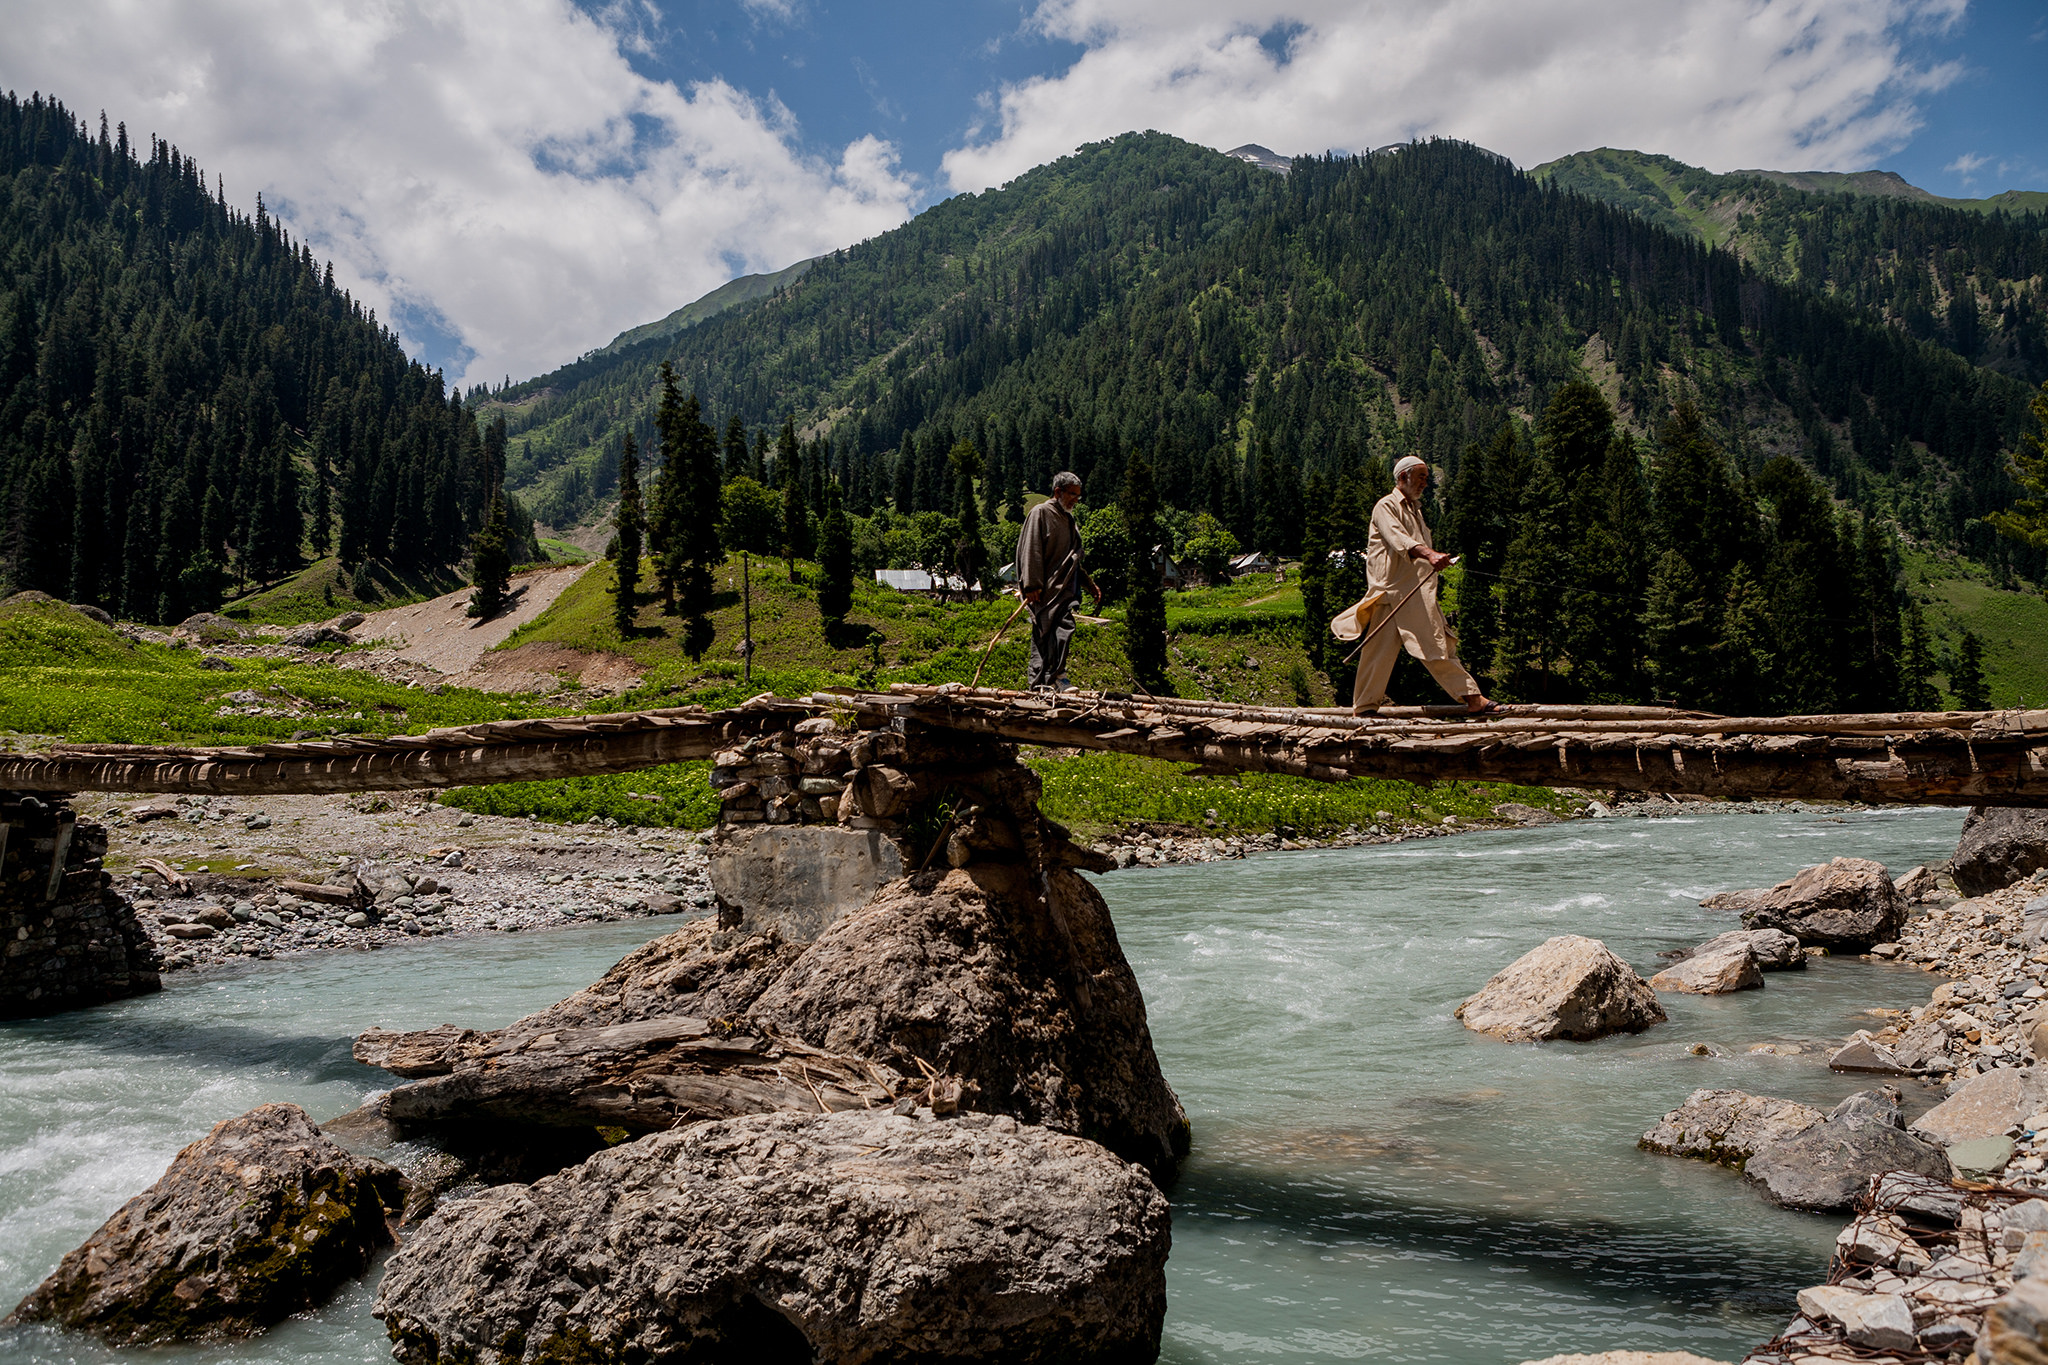 A tributary of the Indus flows through Sarbal, Kashmir. Credit: Sandeep Pachetan/Flickr, CC BY-NC-ND 2.0